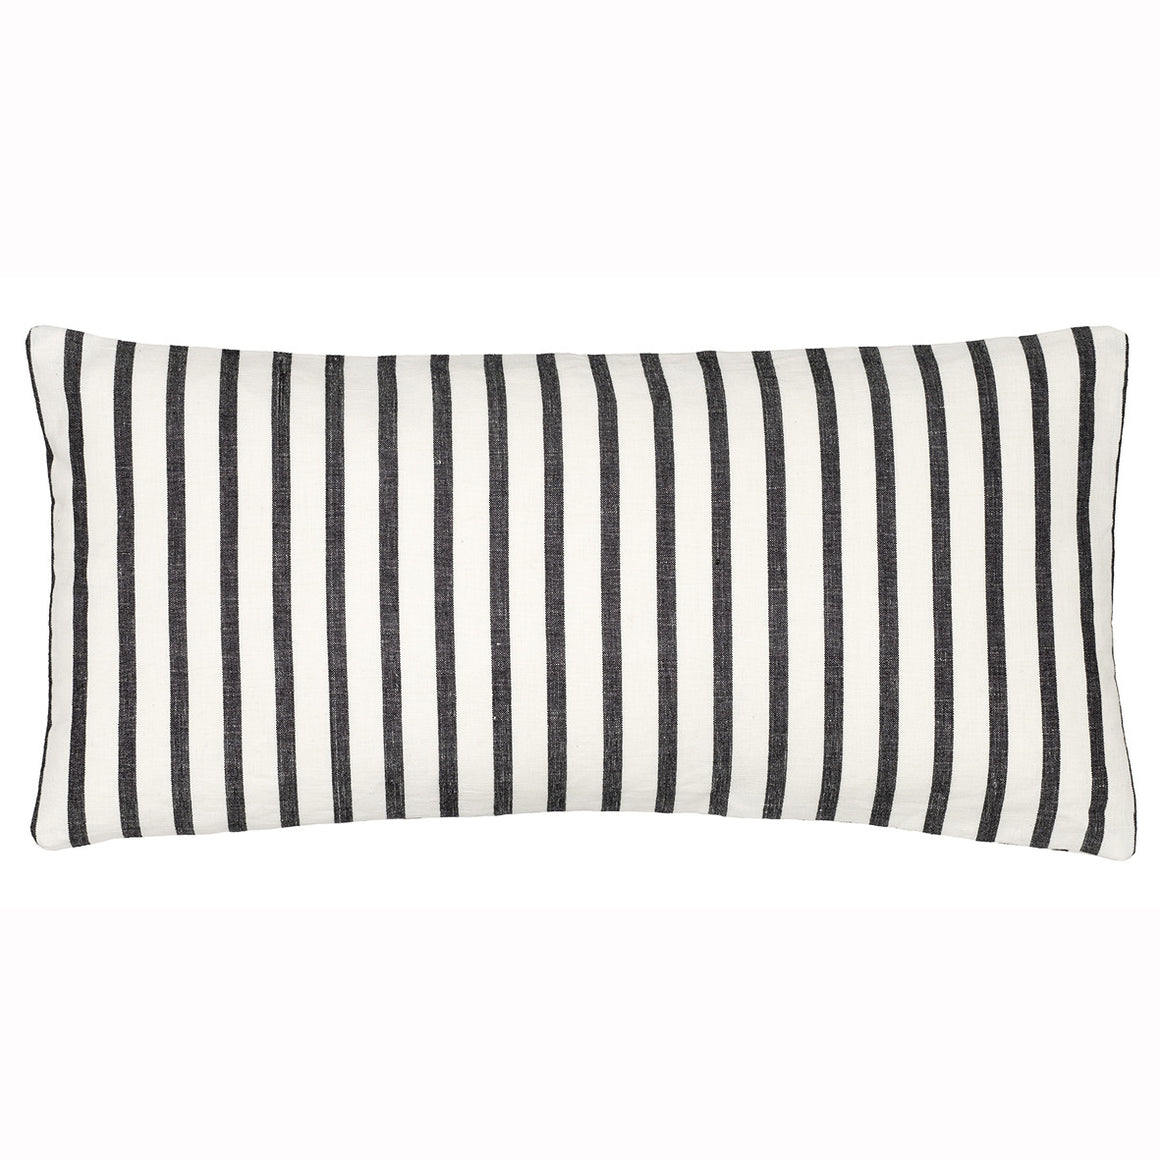 "Autumn Ticking Stripe Rectangle Decorative Throw Pillow Lumbar - Black 30x60cm (12x24"")"